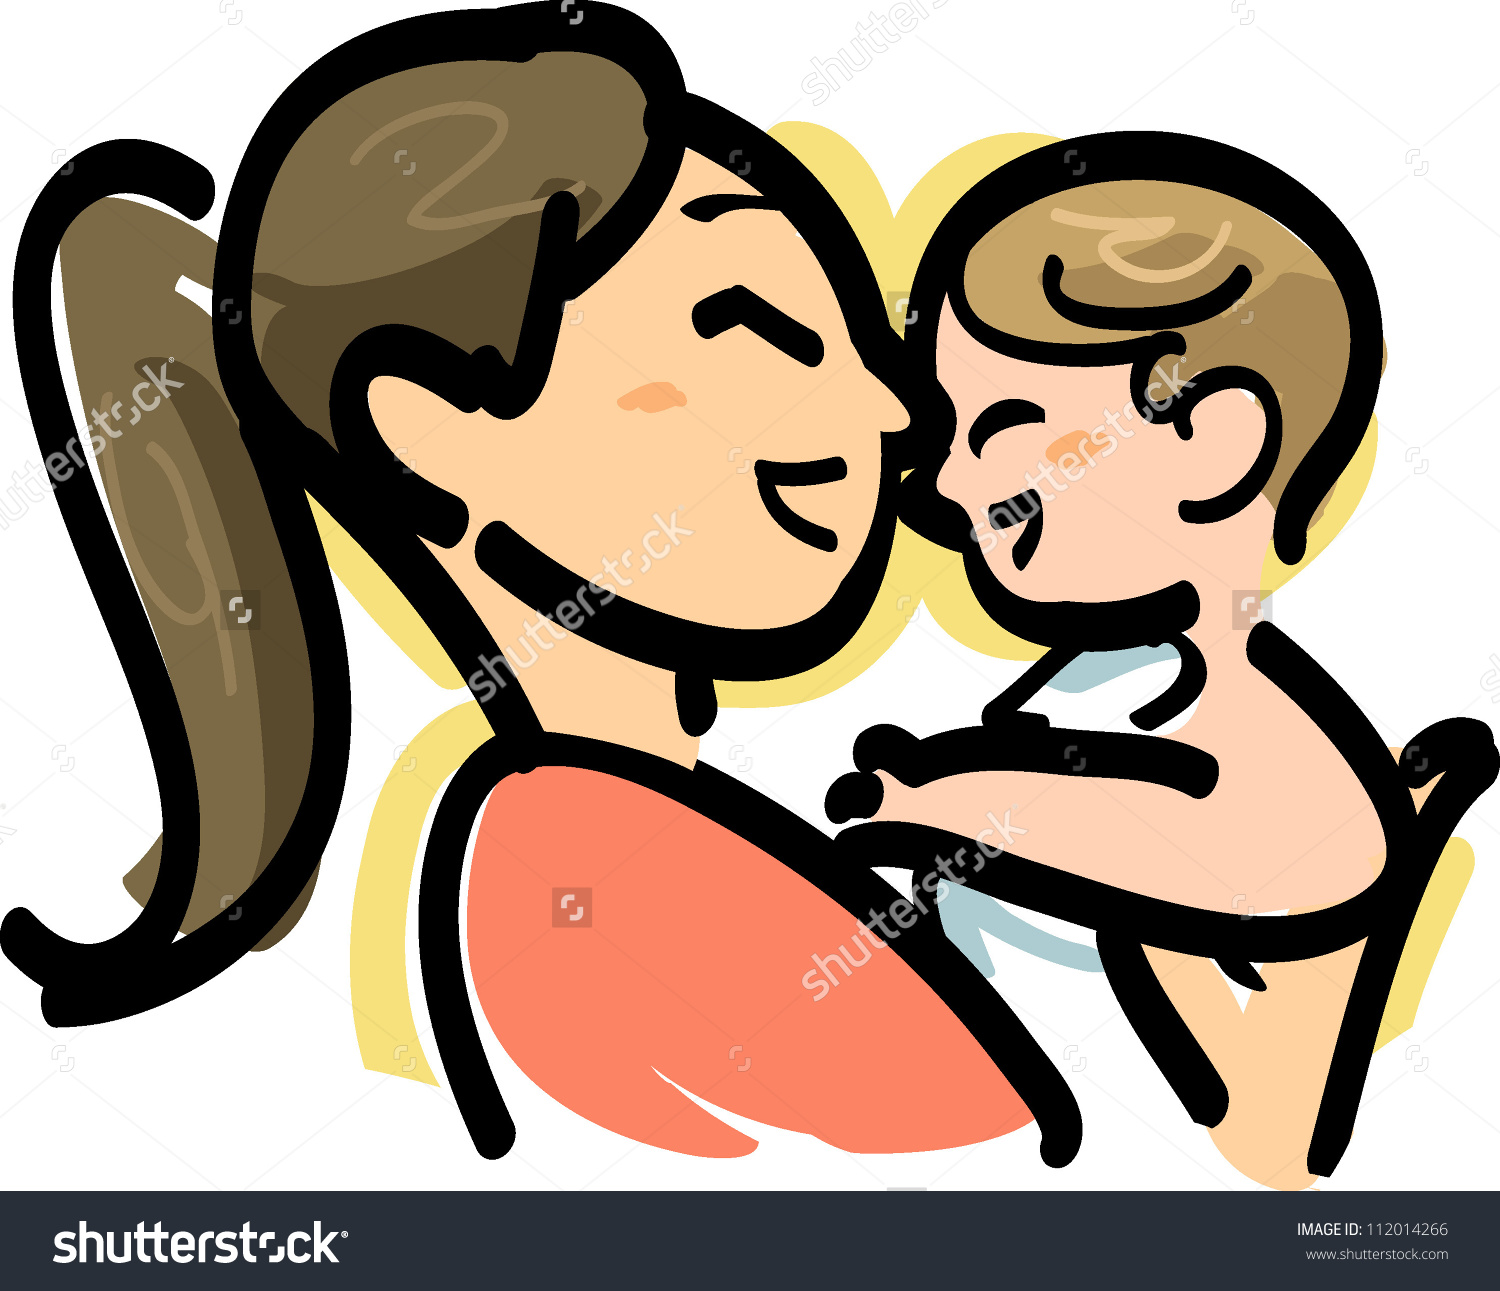 Baby care clipart.